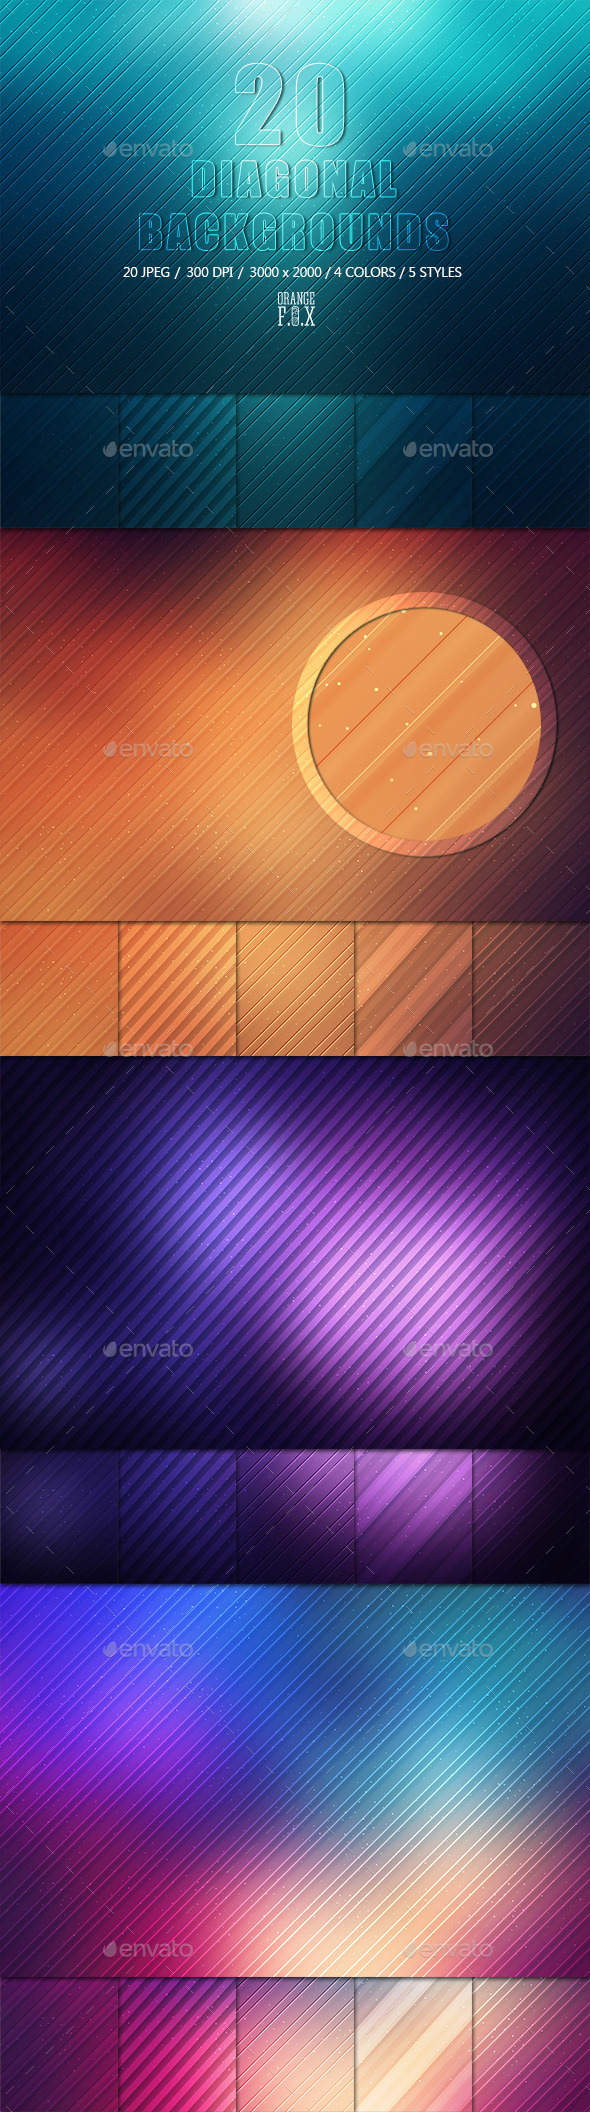 20 diagonal backgrounds_preview.jpg